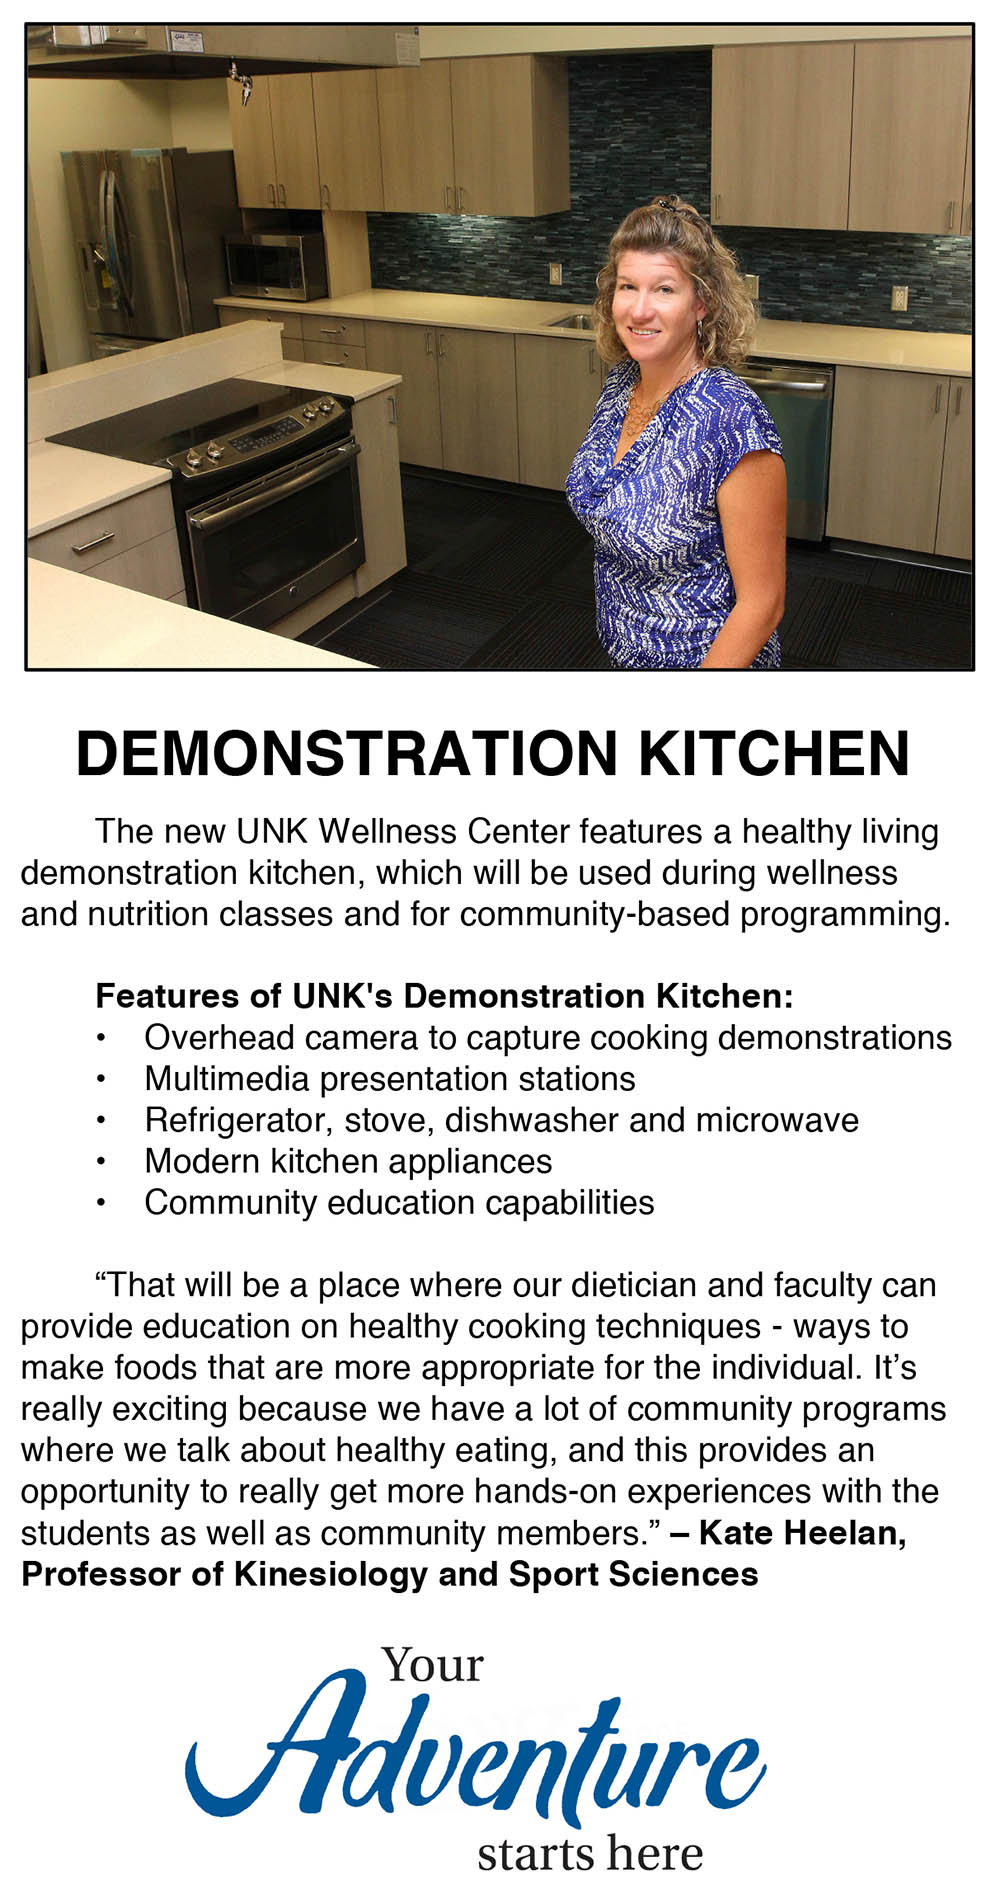 "The new UNK Wellness Center features a healthy living demonstration kitchen, which will be used during wellness and nutrition classes and for community-based programming.   Features of UNK's Demonstration Kitchen: •	Overhead camera to capture cooking demonstrations •	Multimedia presentation stations •	Refrigerator, stove, dishwasher and microwave •	Modern kitchen appliances •	Community education capabilities  ""That will be a place where our dietician and faculty can provide education on healthy cooking techniques - ways to make foods that are more appropriate for the individual. It's really exciting because we have a lot of community programs where we talk about healthy eating, and this provides an opportunity to really get more hands-on experiences with the students as well as community members."" – Kate Heelan, Professor of Kinesiology and Sport Sciences"